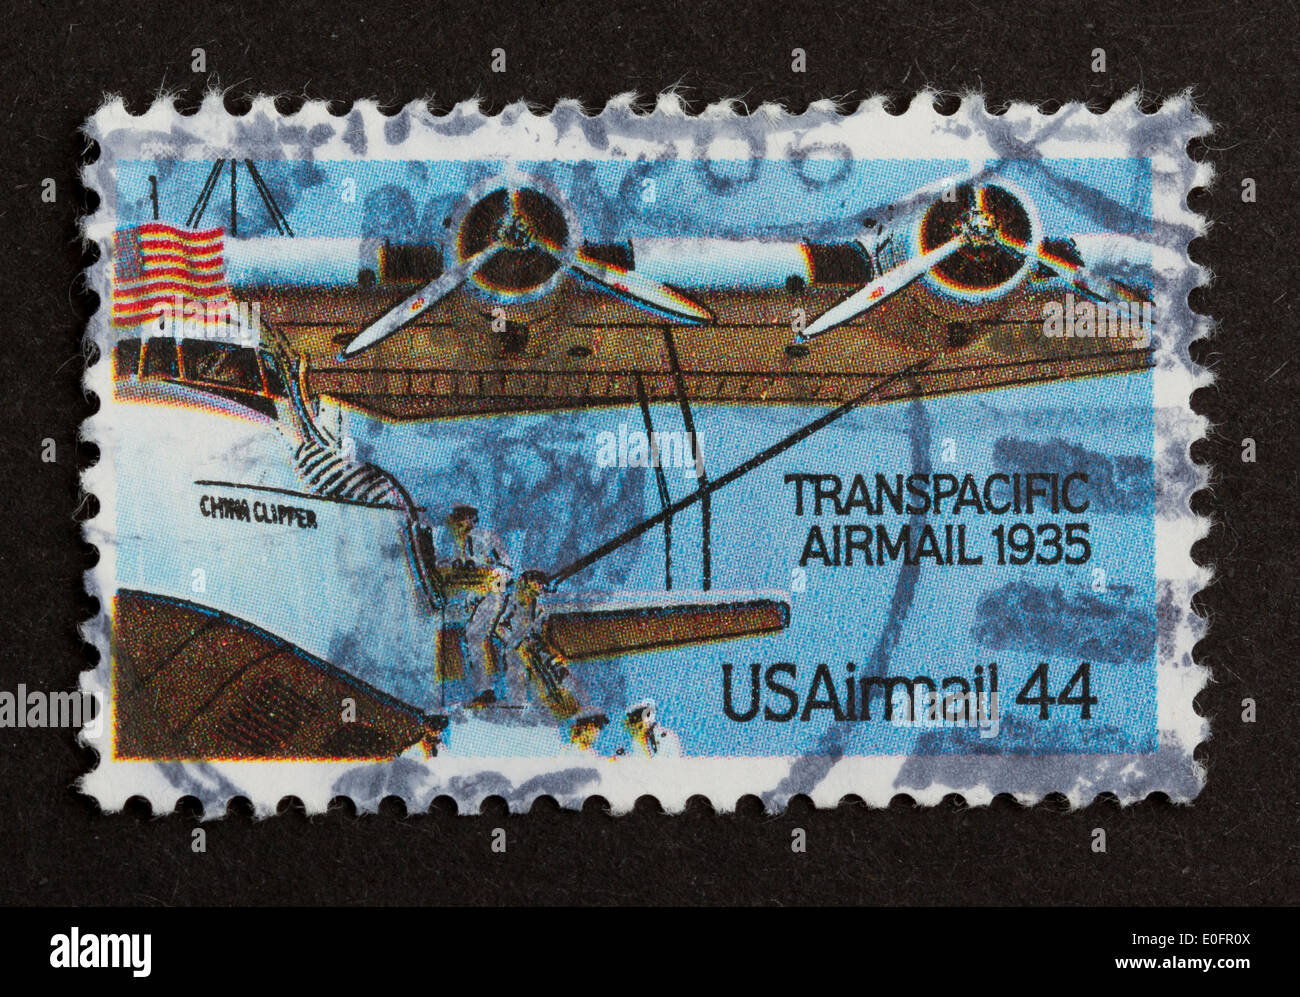 USA - CIRCA 1975: Stamp printed in the USA shows a airplane from the Transpacidic Airmail 1935, circa 1975 Stock Photo